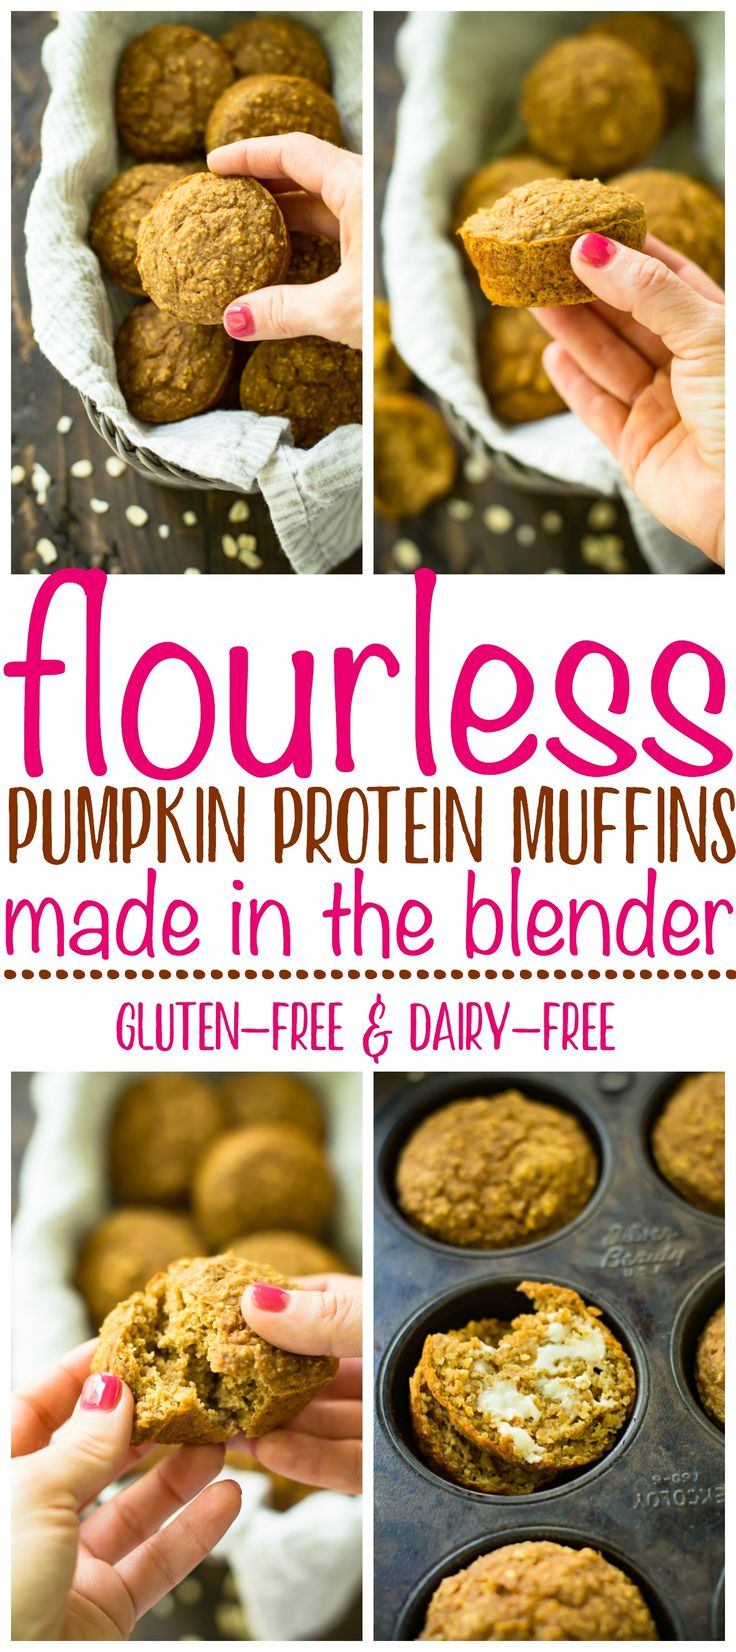 Moist and packed with fall flavor and the perfect amount of spice, these Pumpkin Protein Muffins are so delicious that I can guarantee no one will ever know that they're loaded with protein and healthy carbs, and that they are low in sugar! With this winning combination of flavor and nutrition, they are sure to be a hit this fall season! AD #sodeliciousdairyfree